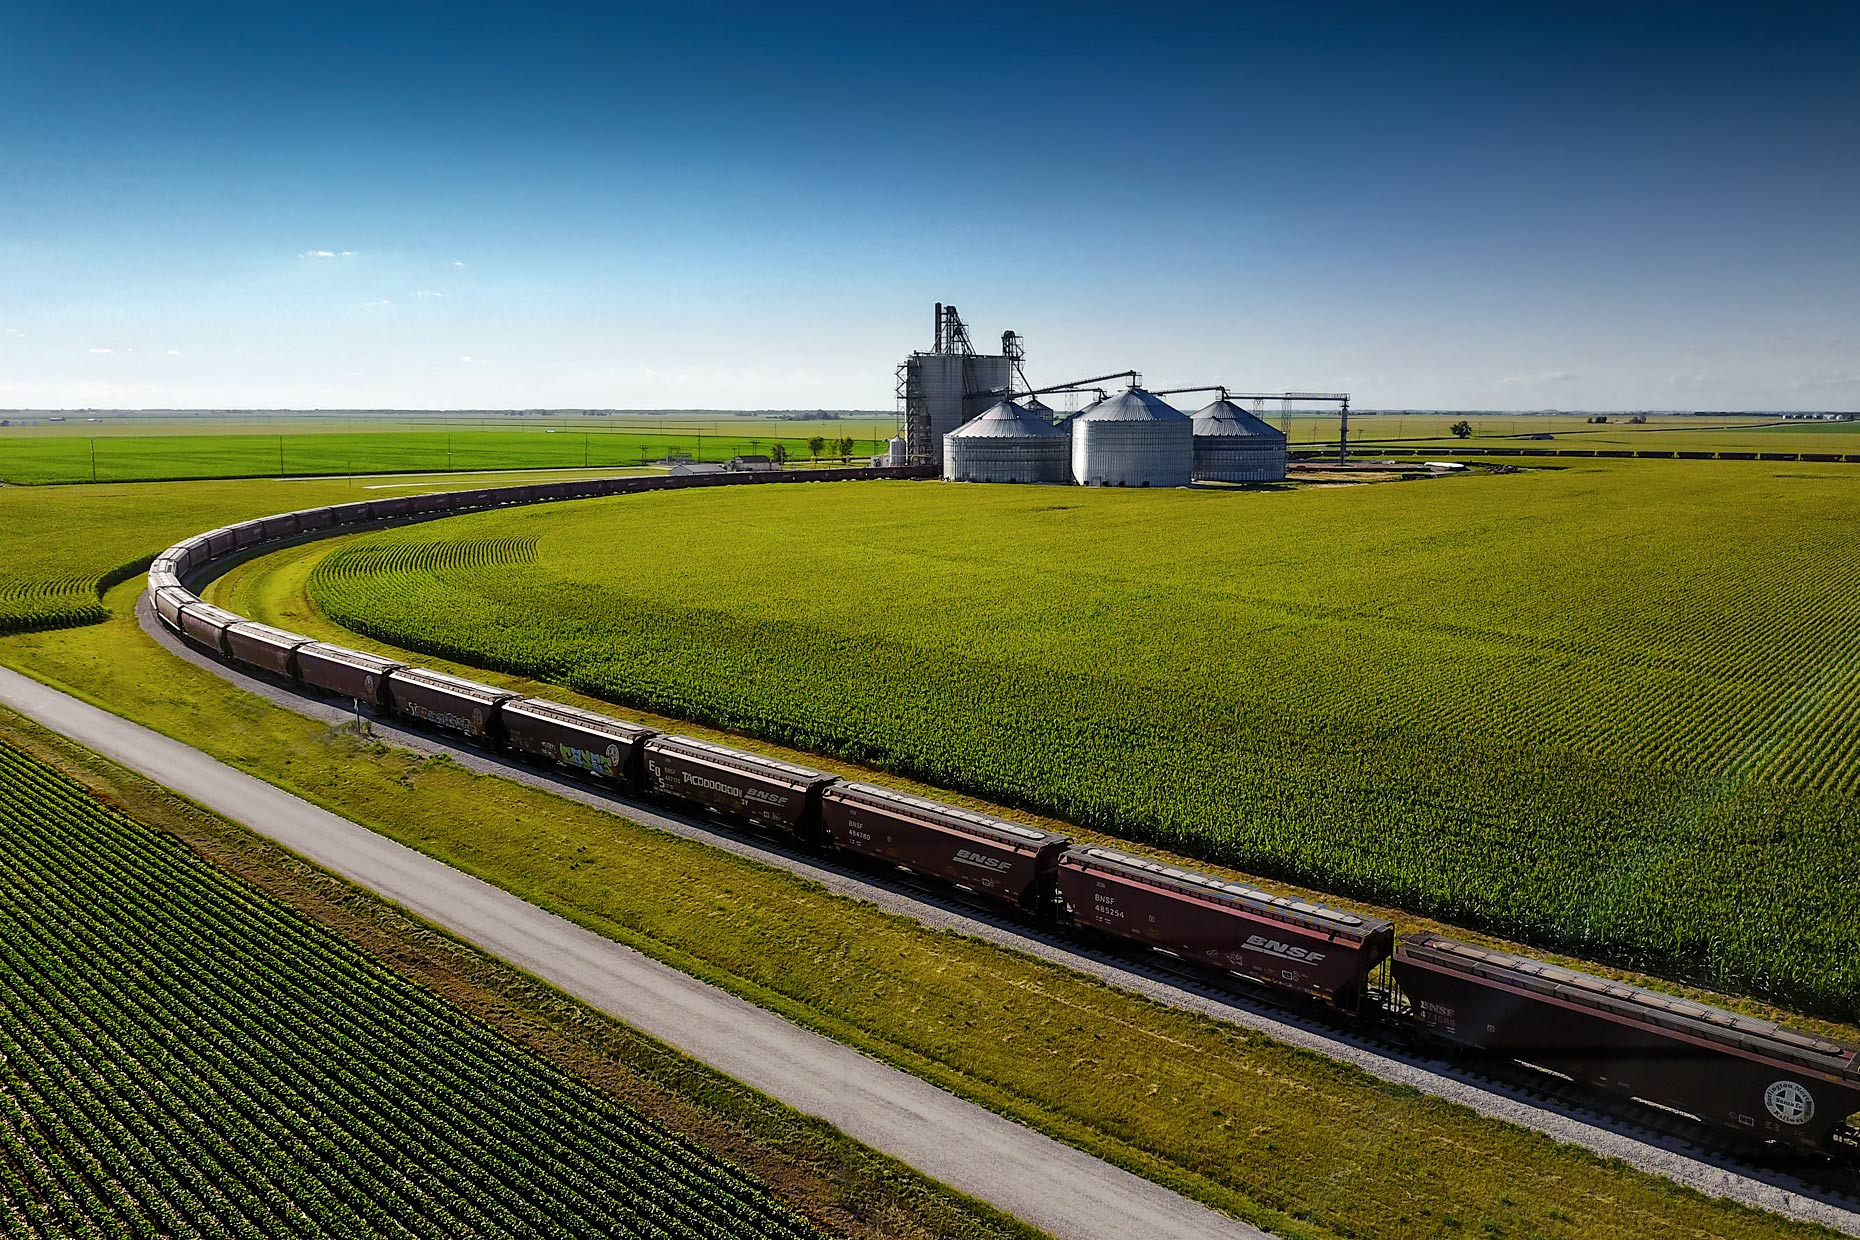 Freight train leaves grain silos through corn fields | Scott Gable industrial photographer